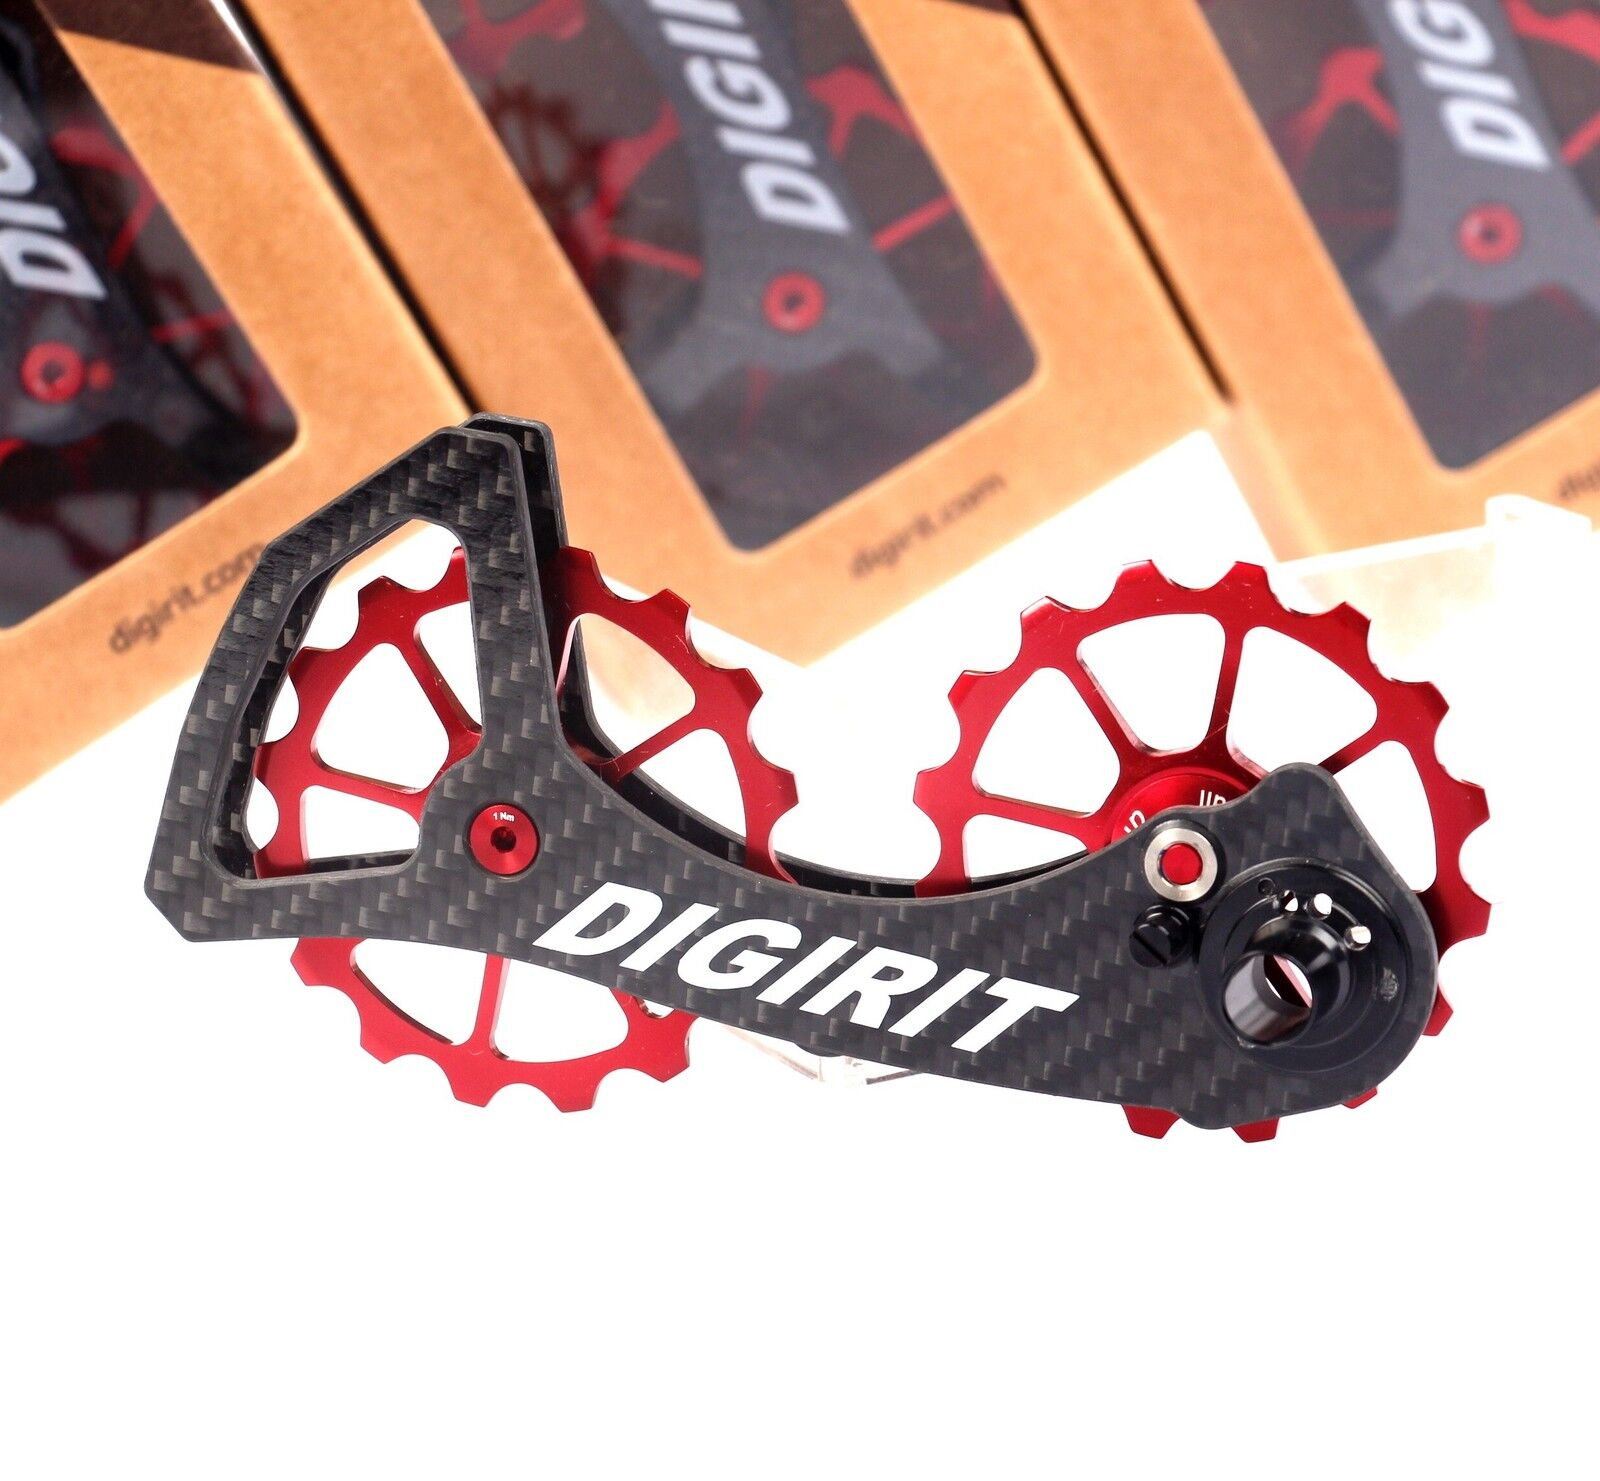 DIGIRIT oversized Pulley Wheel 16 16T Red System Carbon Cage Dura Ace Ultegra